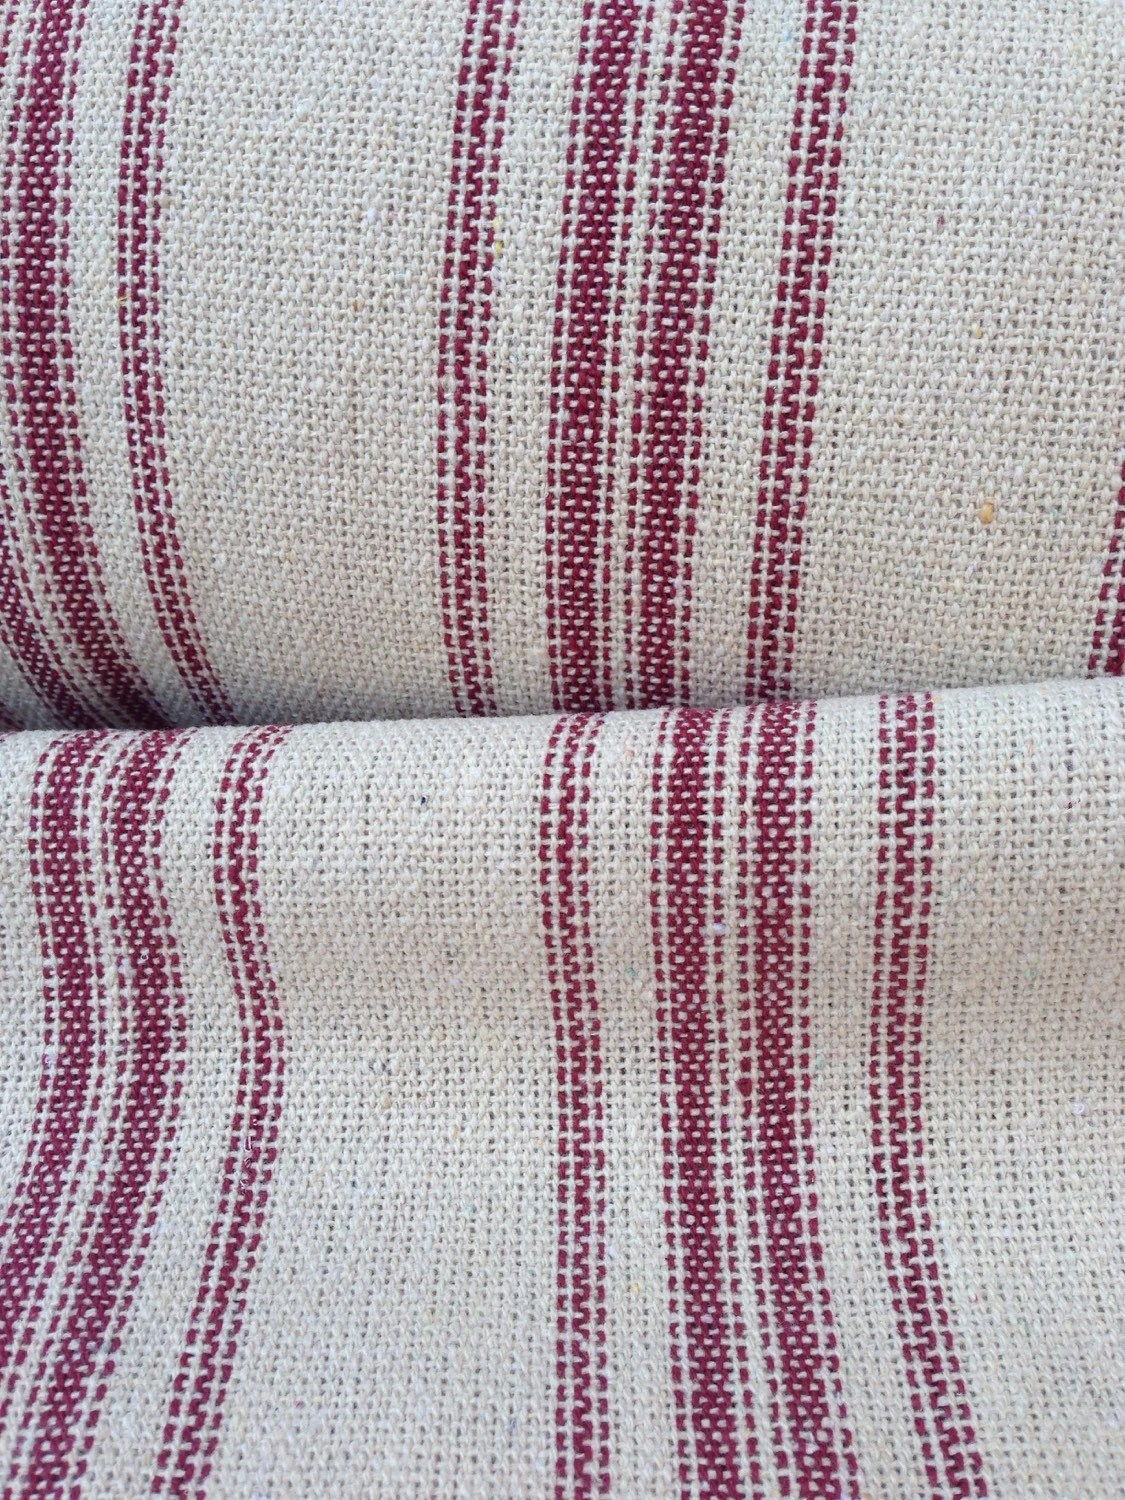 Flour Sack Fabric By The Yard Grain Sack Fabric Red Stripes Vintage Inspired Sold By The